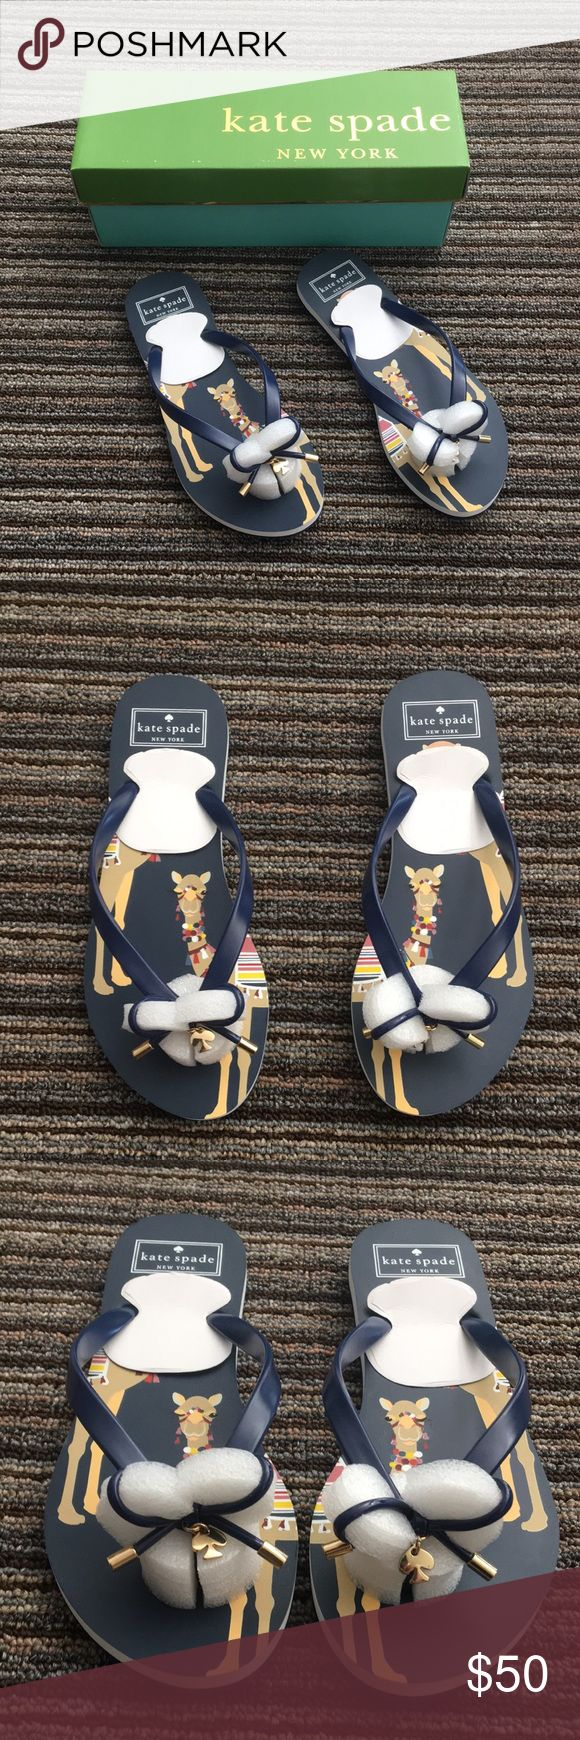 NEW Kate Spade Camel Print Flip Flops Size 7 New In Box. Kate Spade New York Flip Flops. kate spade Shoes